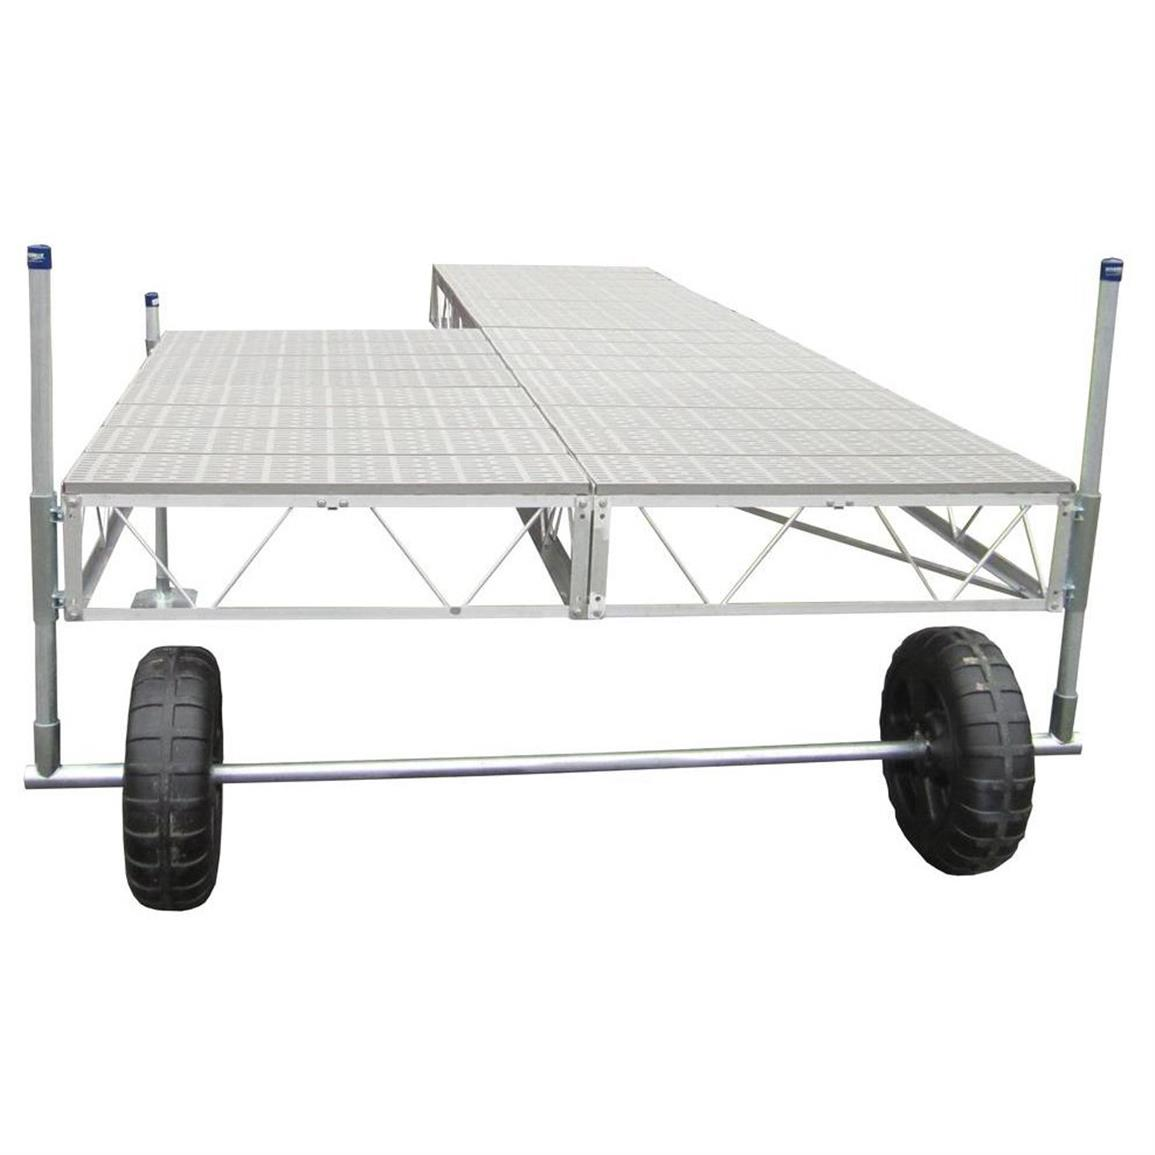 Patriot 32' Patio Roll-in Poly Dock Kit